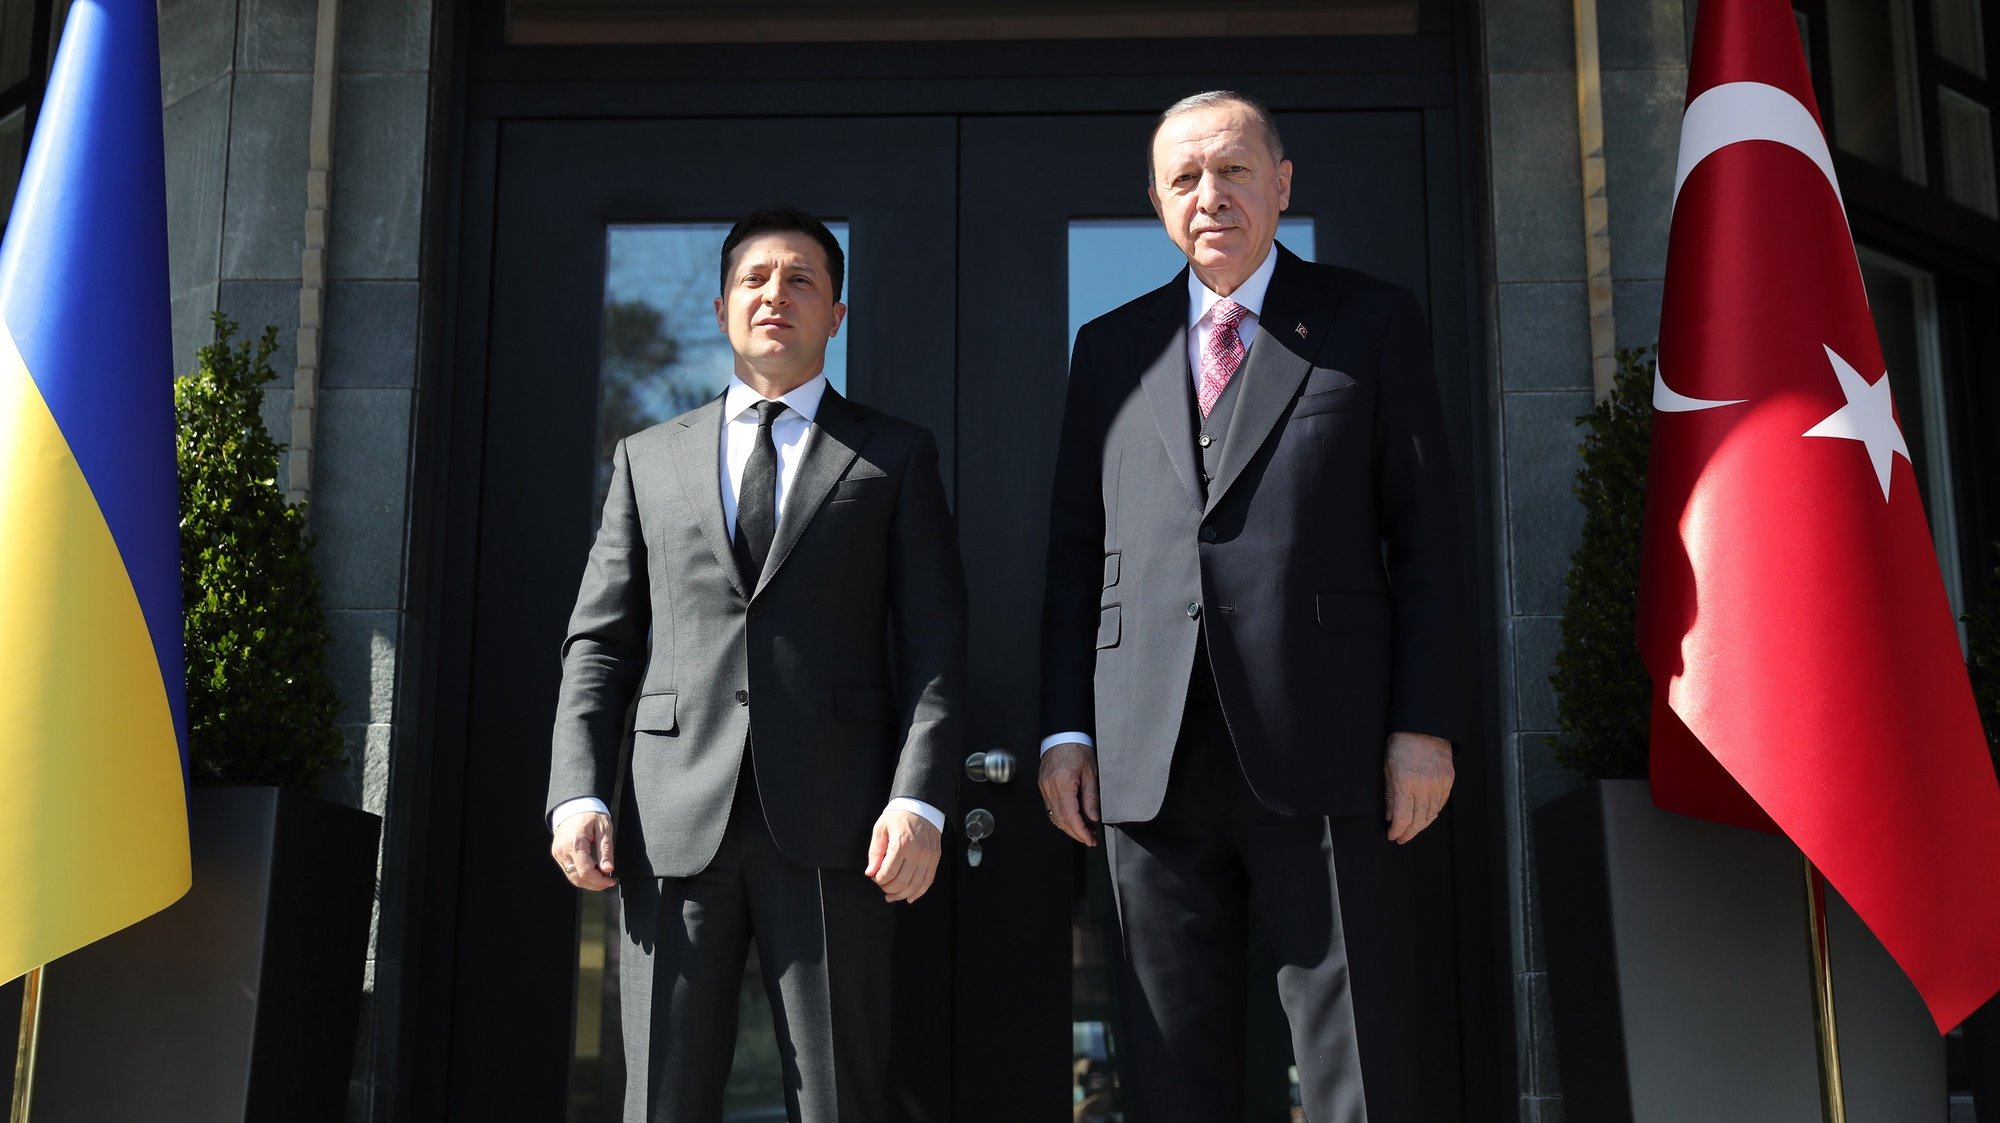 epa09126590 A handout photo made available by the Turkish President Press Office shows, Turkish President Recep Tayyip Erdogan (R) and Ukrainas President Volodymyr Zelensky (L) pose before their meeting in Istanbul, Turkey, 09 April 2021.  EPA/TURKISH PRESIDENT PRESS OFFICE / HANDOUT  HANDOUT EDITORIAL USE ONLY/NO SALES